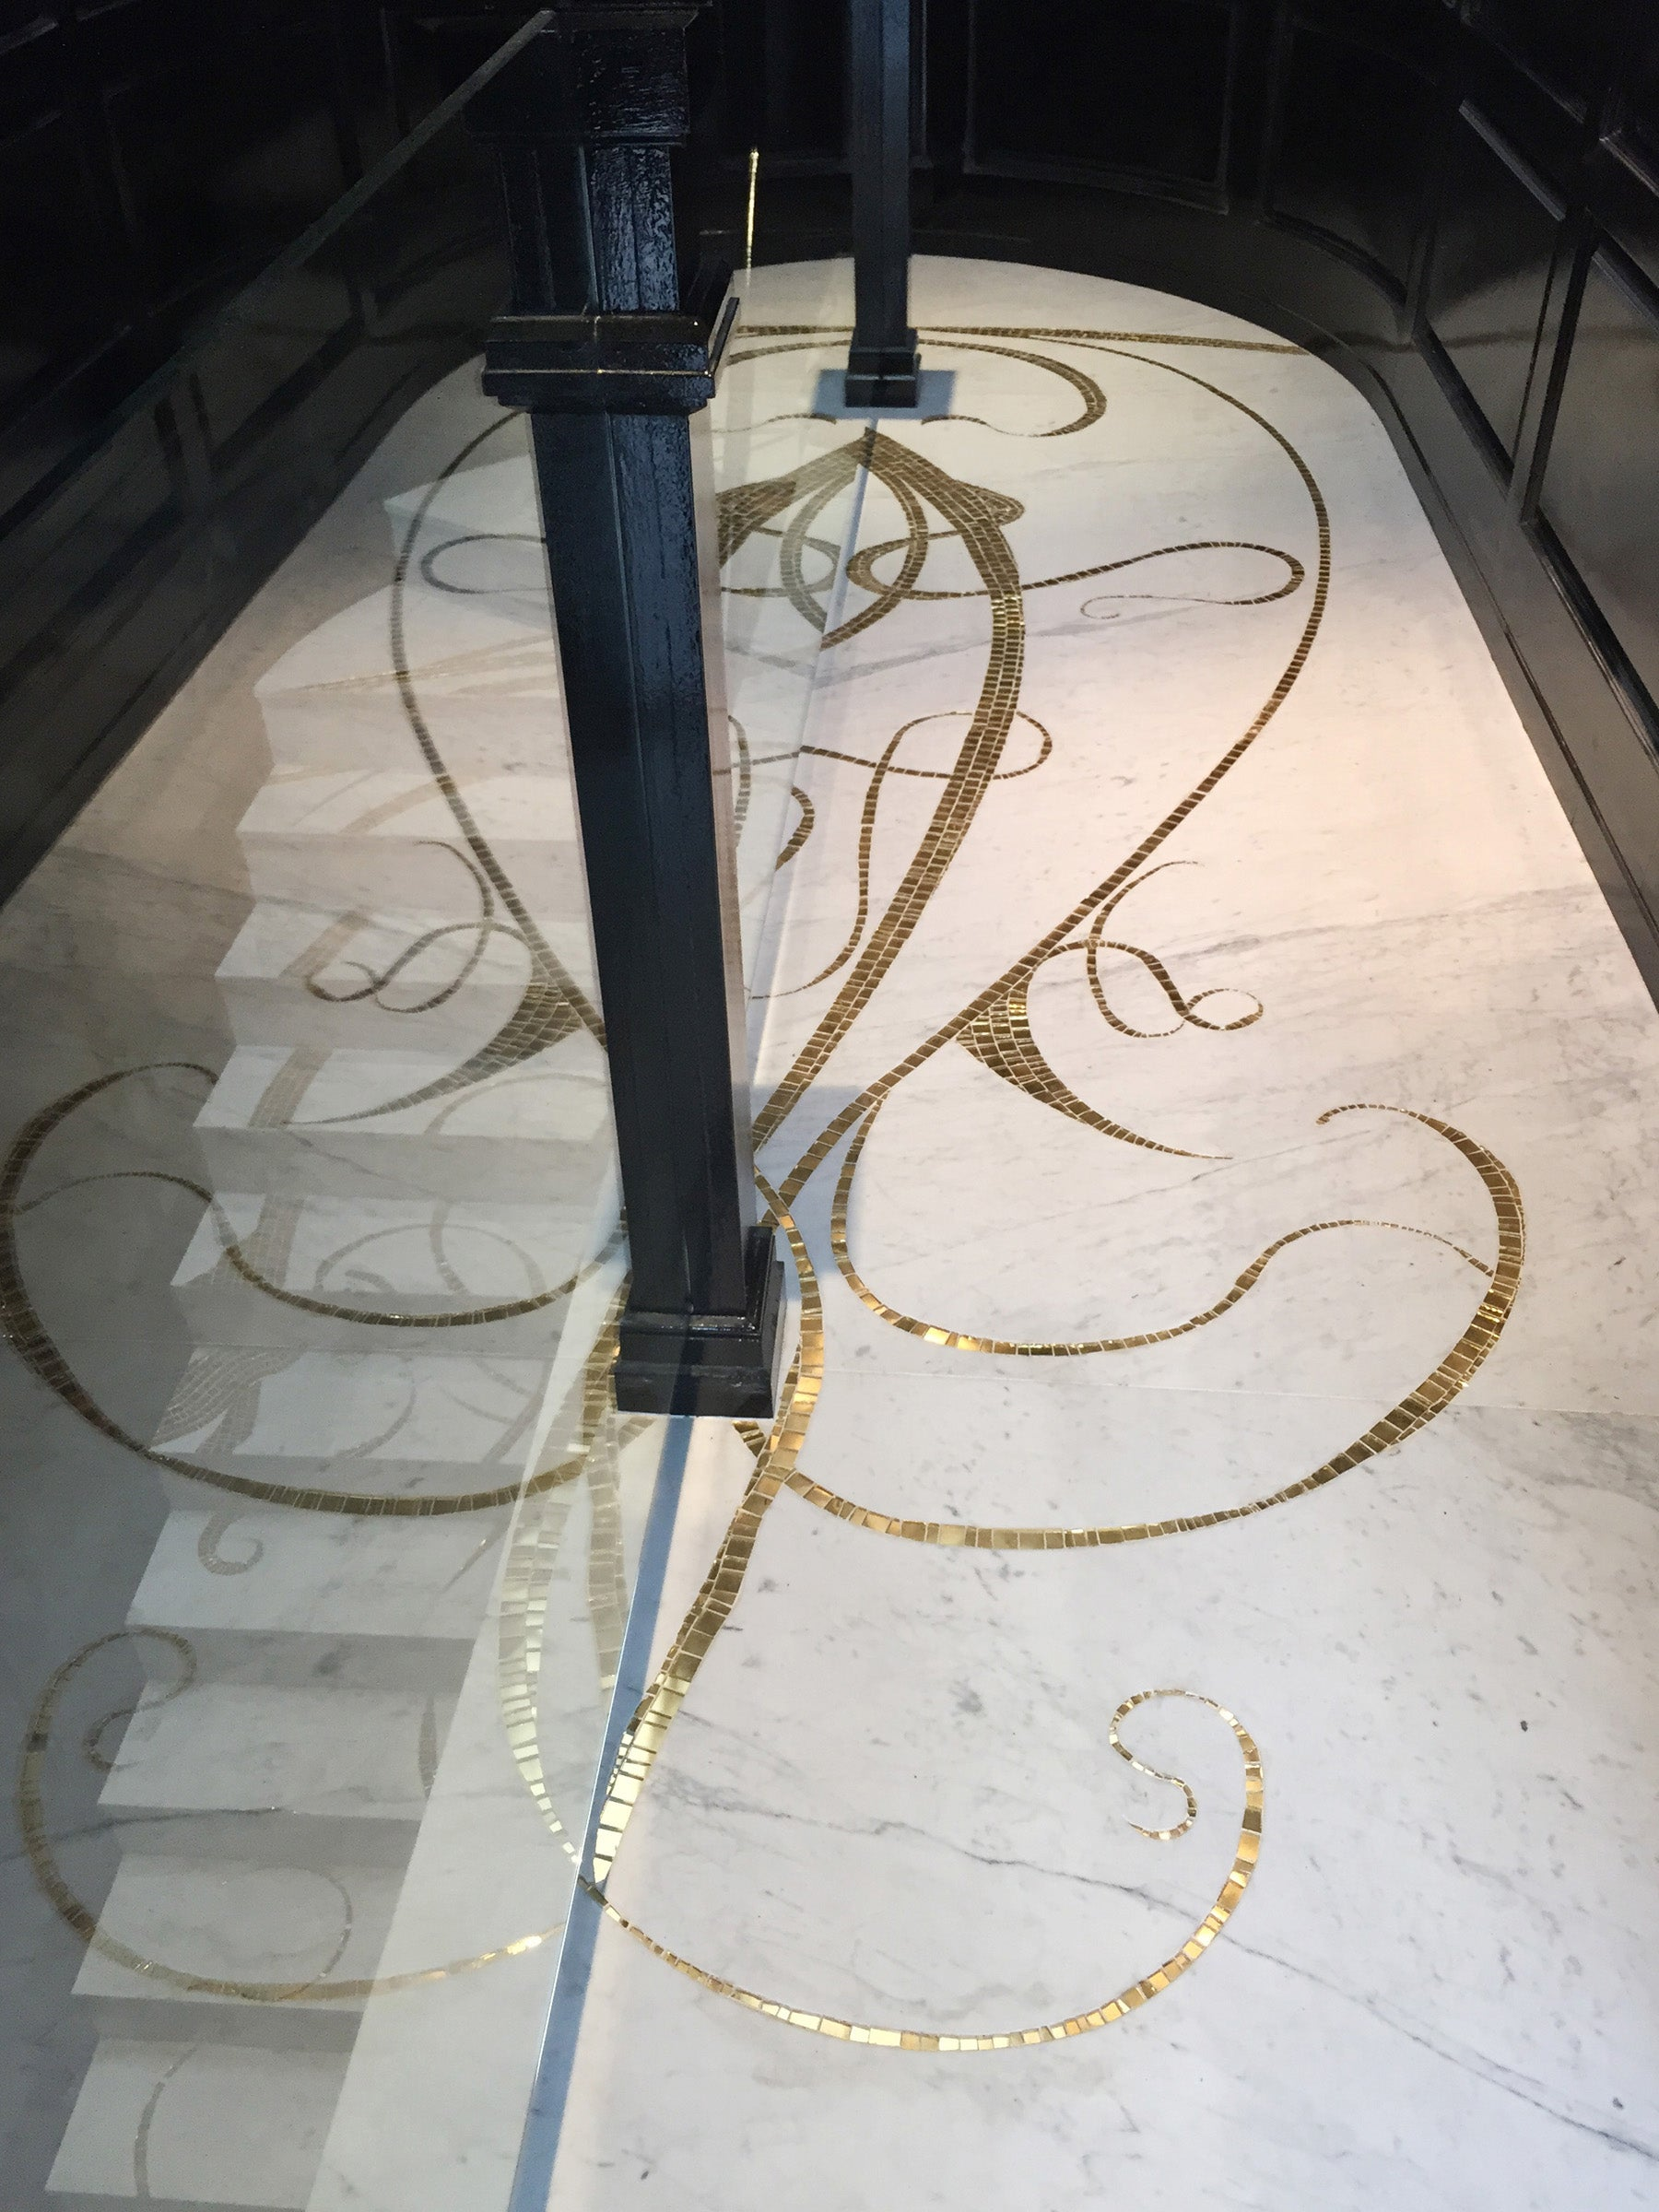 SOHO Penthouse Marble & Gold Mosaic Floor & Stairs, New York, N.Y. By Cathleen Newsham